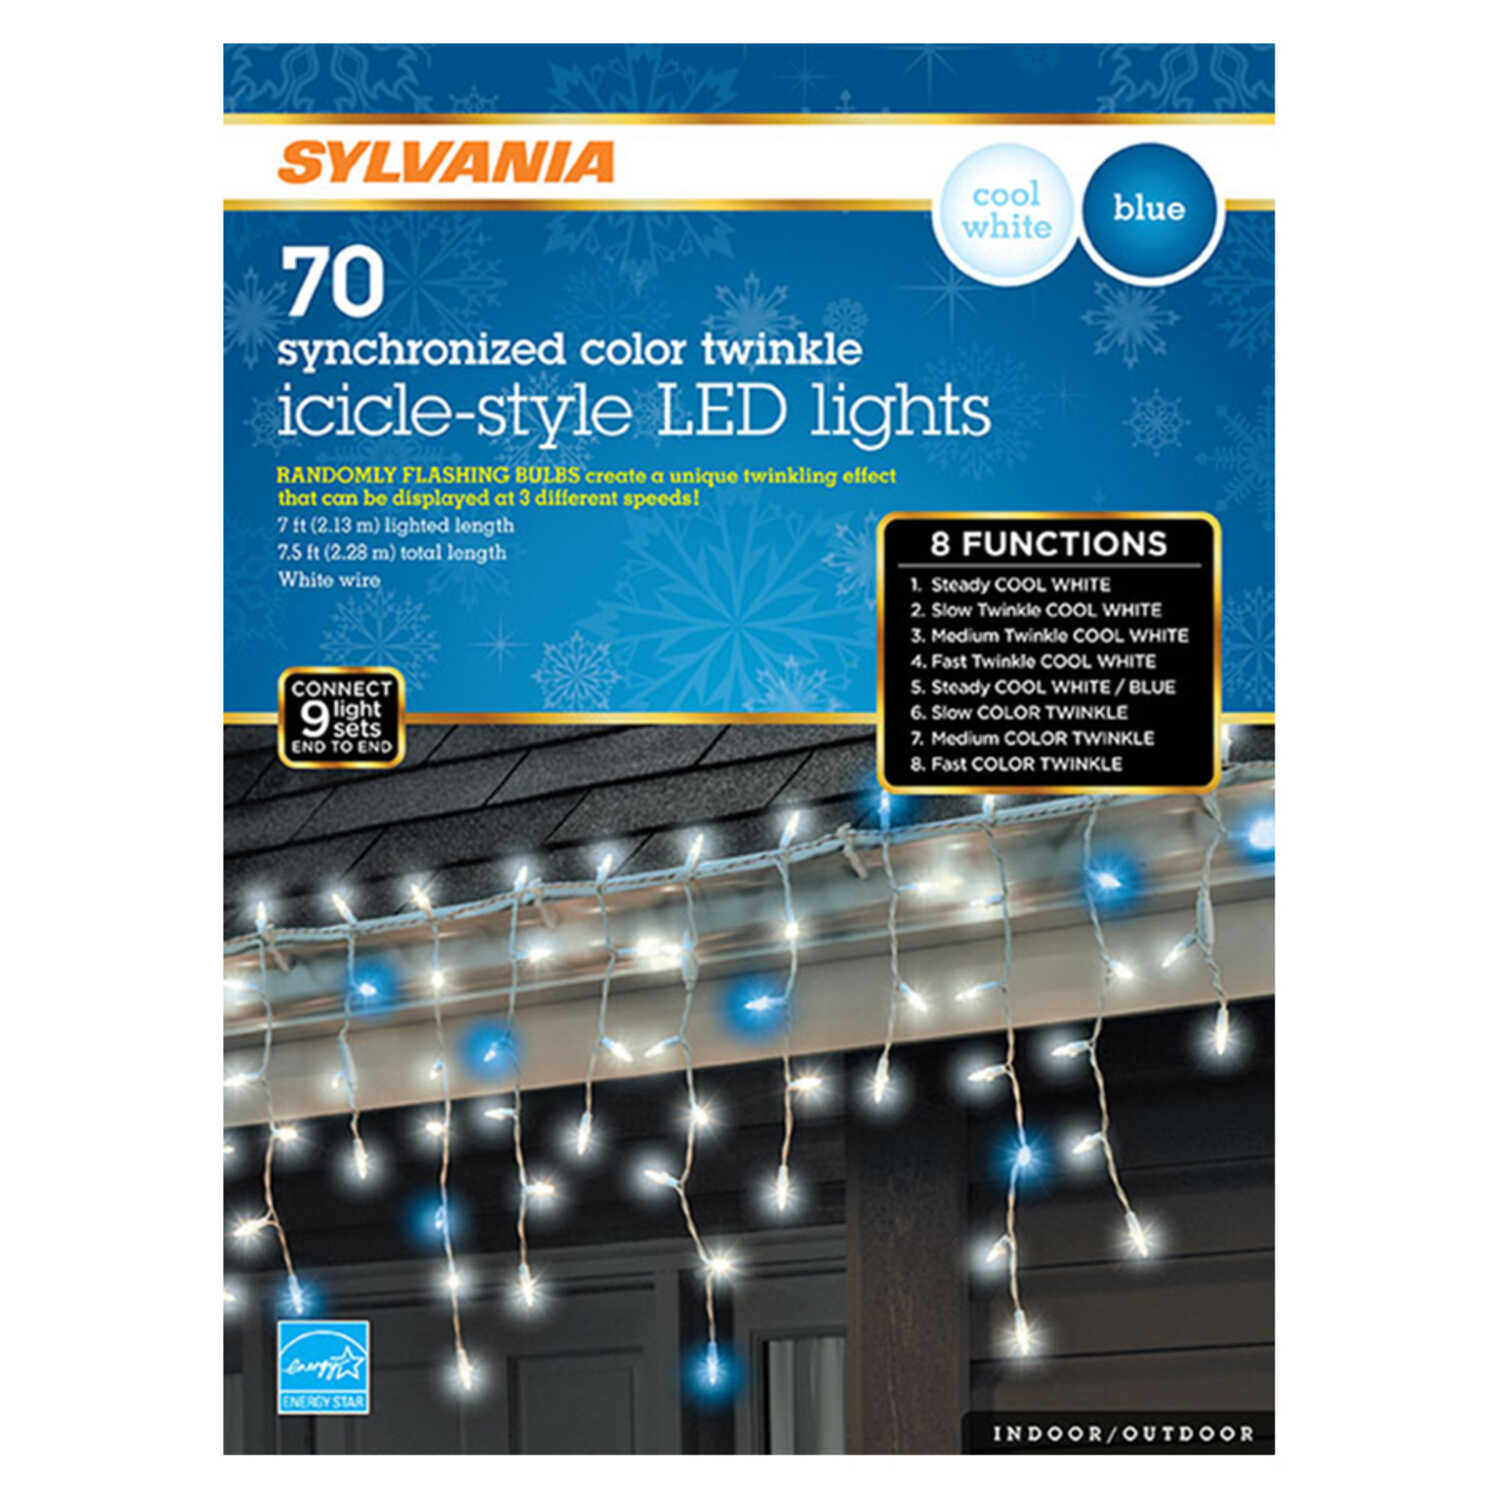 Sylvania  LED  Synchronized color twinkle  Light Set  Blue/White  6.33 ft. 70 lights